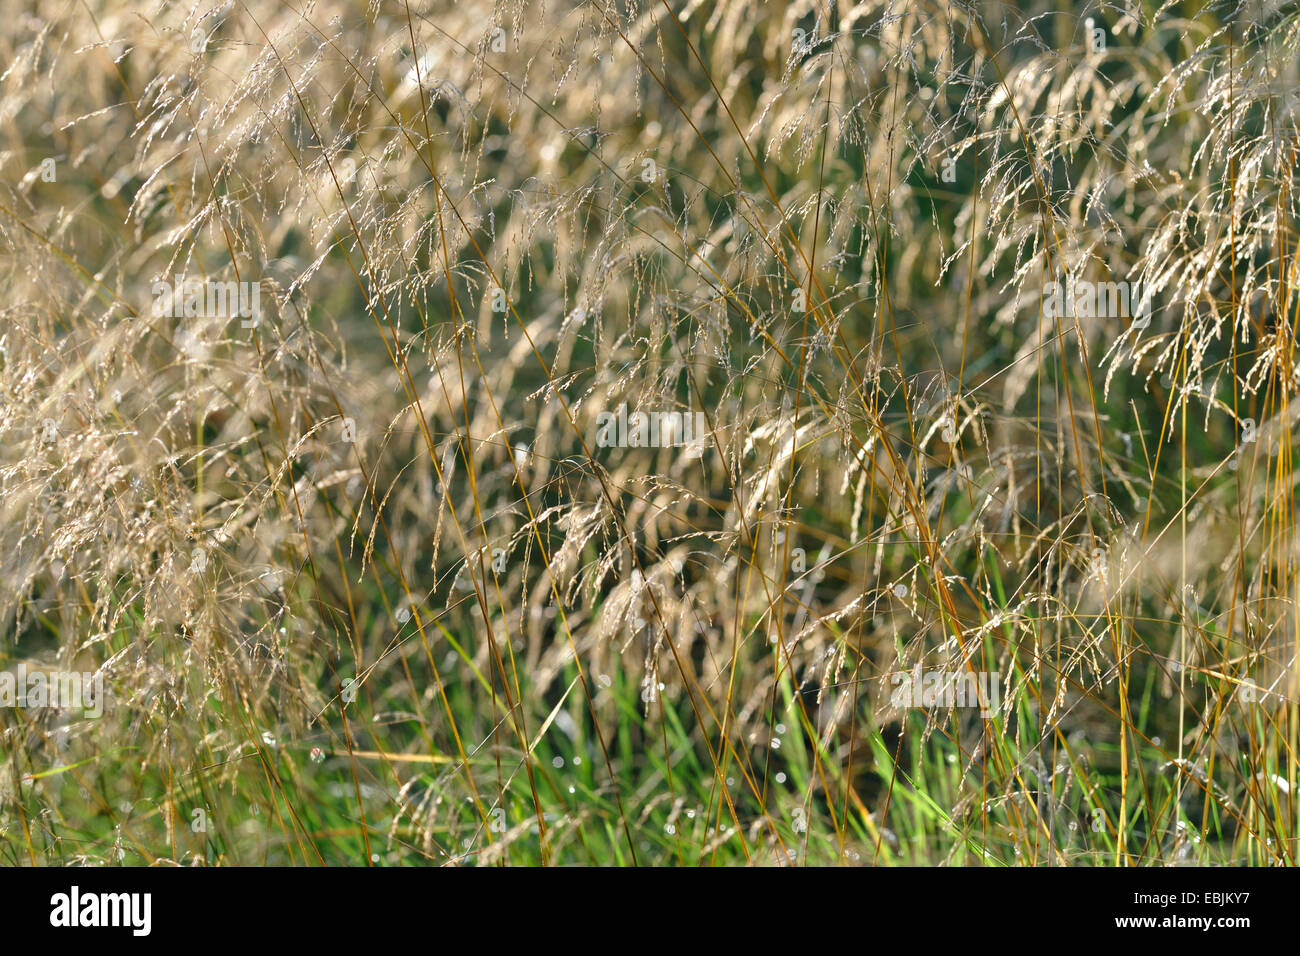 tufted hair-grass (Deschampsia cespitosa), with morning dew, Germany Stock Photo